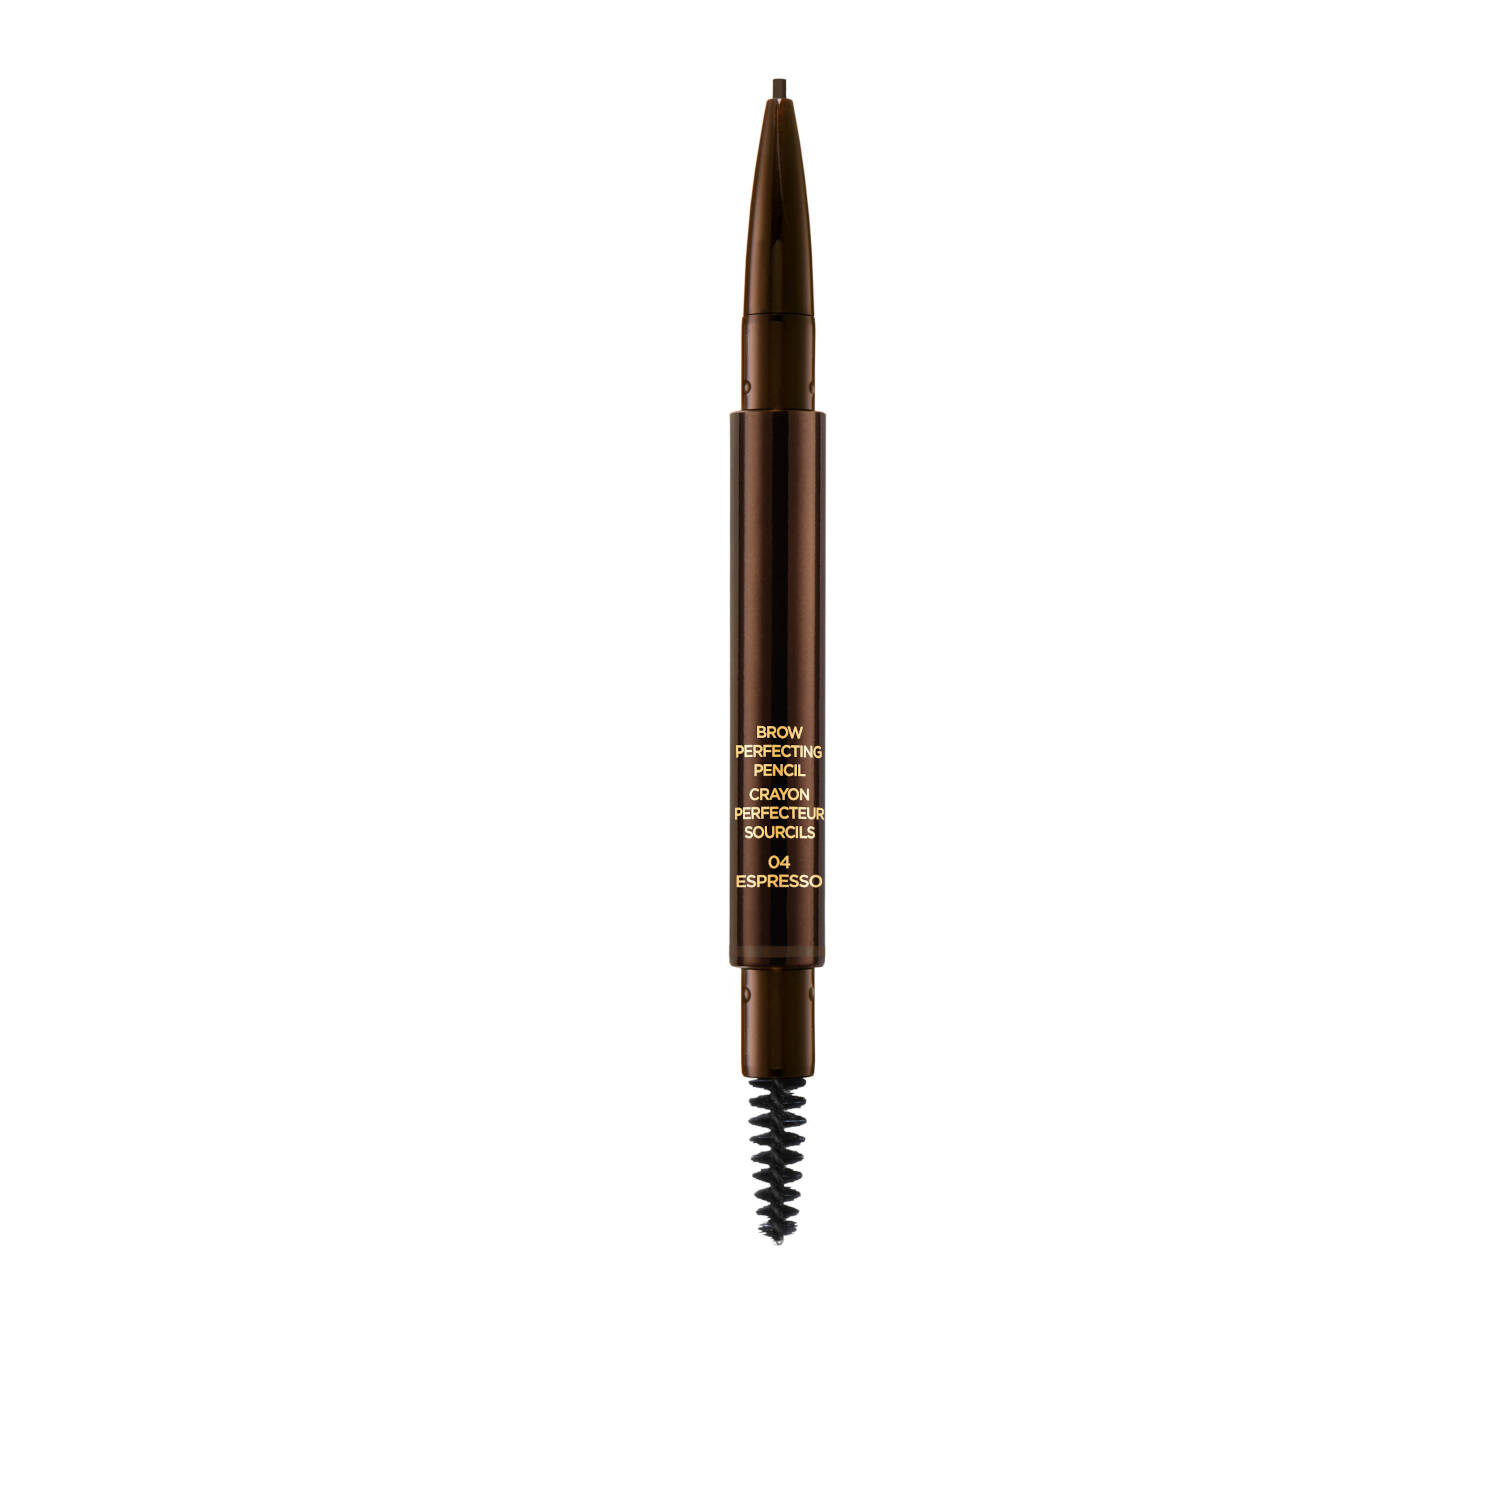 TOM FORD Brow Perfecting Pencil - 04 Espresso (04 | 0,07g) Make Up, Augen, Augenbrauen, Eyes von TOM FORD